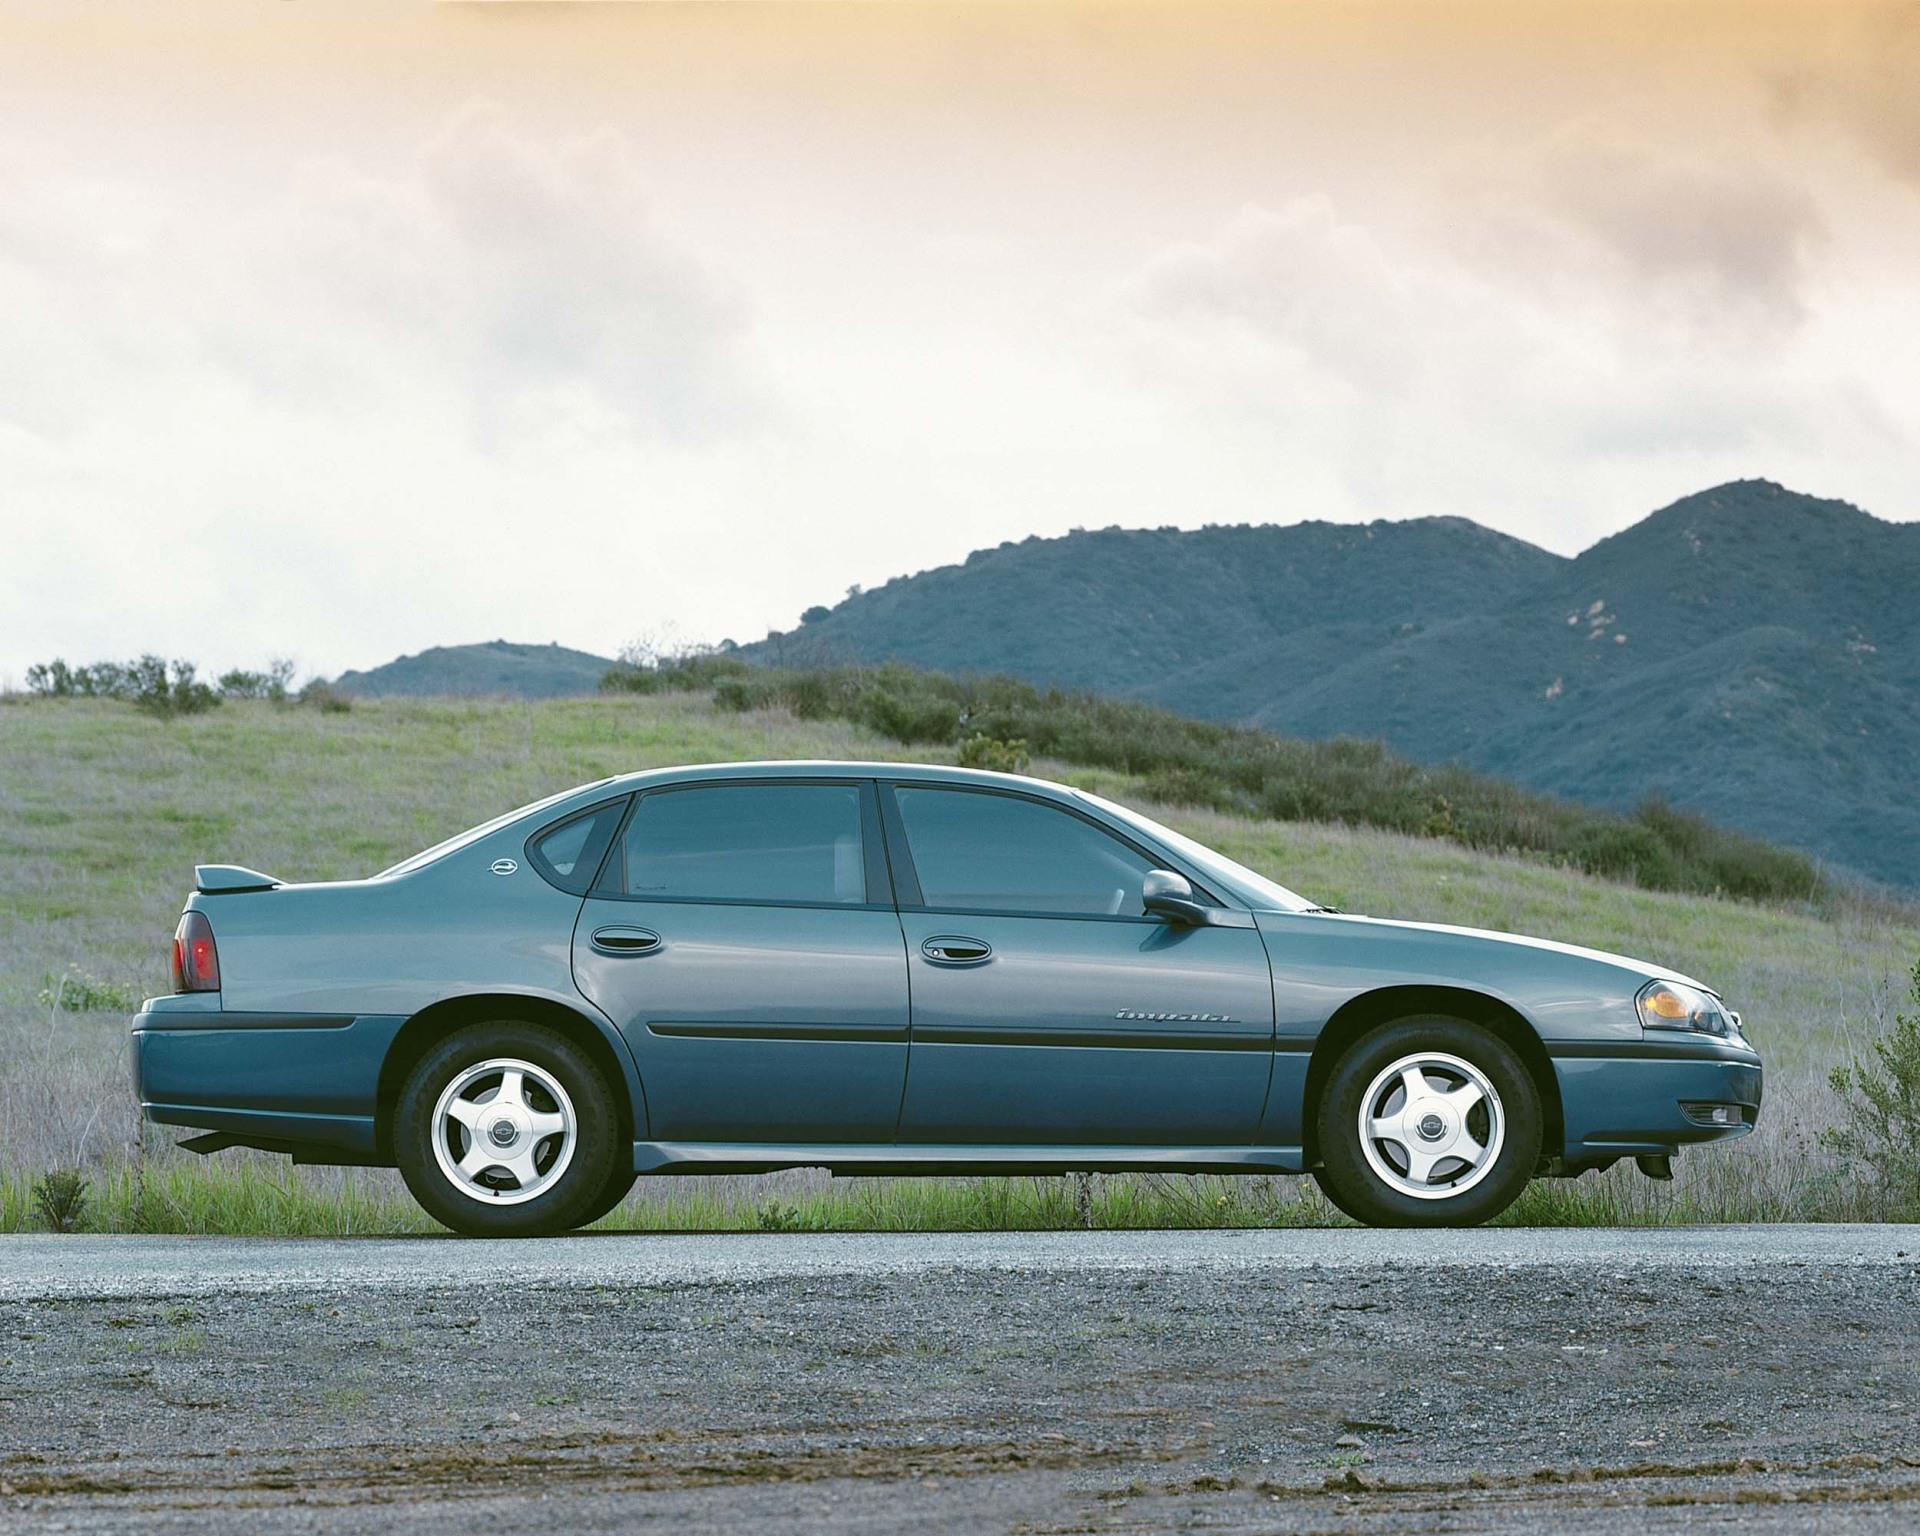 2001 chevrolet impala pictures history value research news conceptcarz com